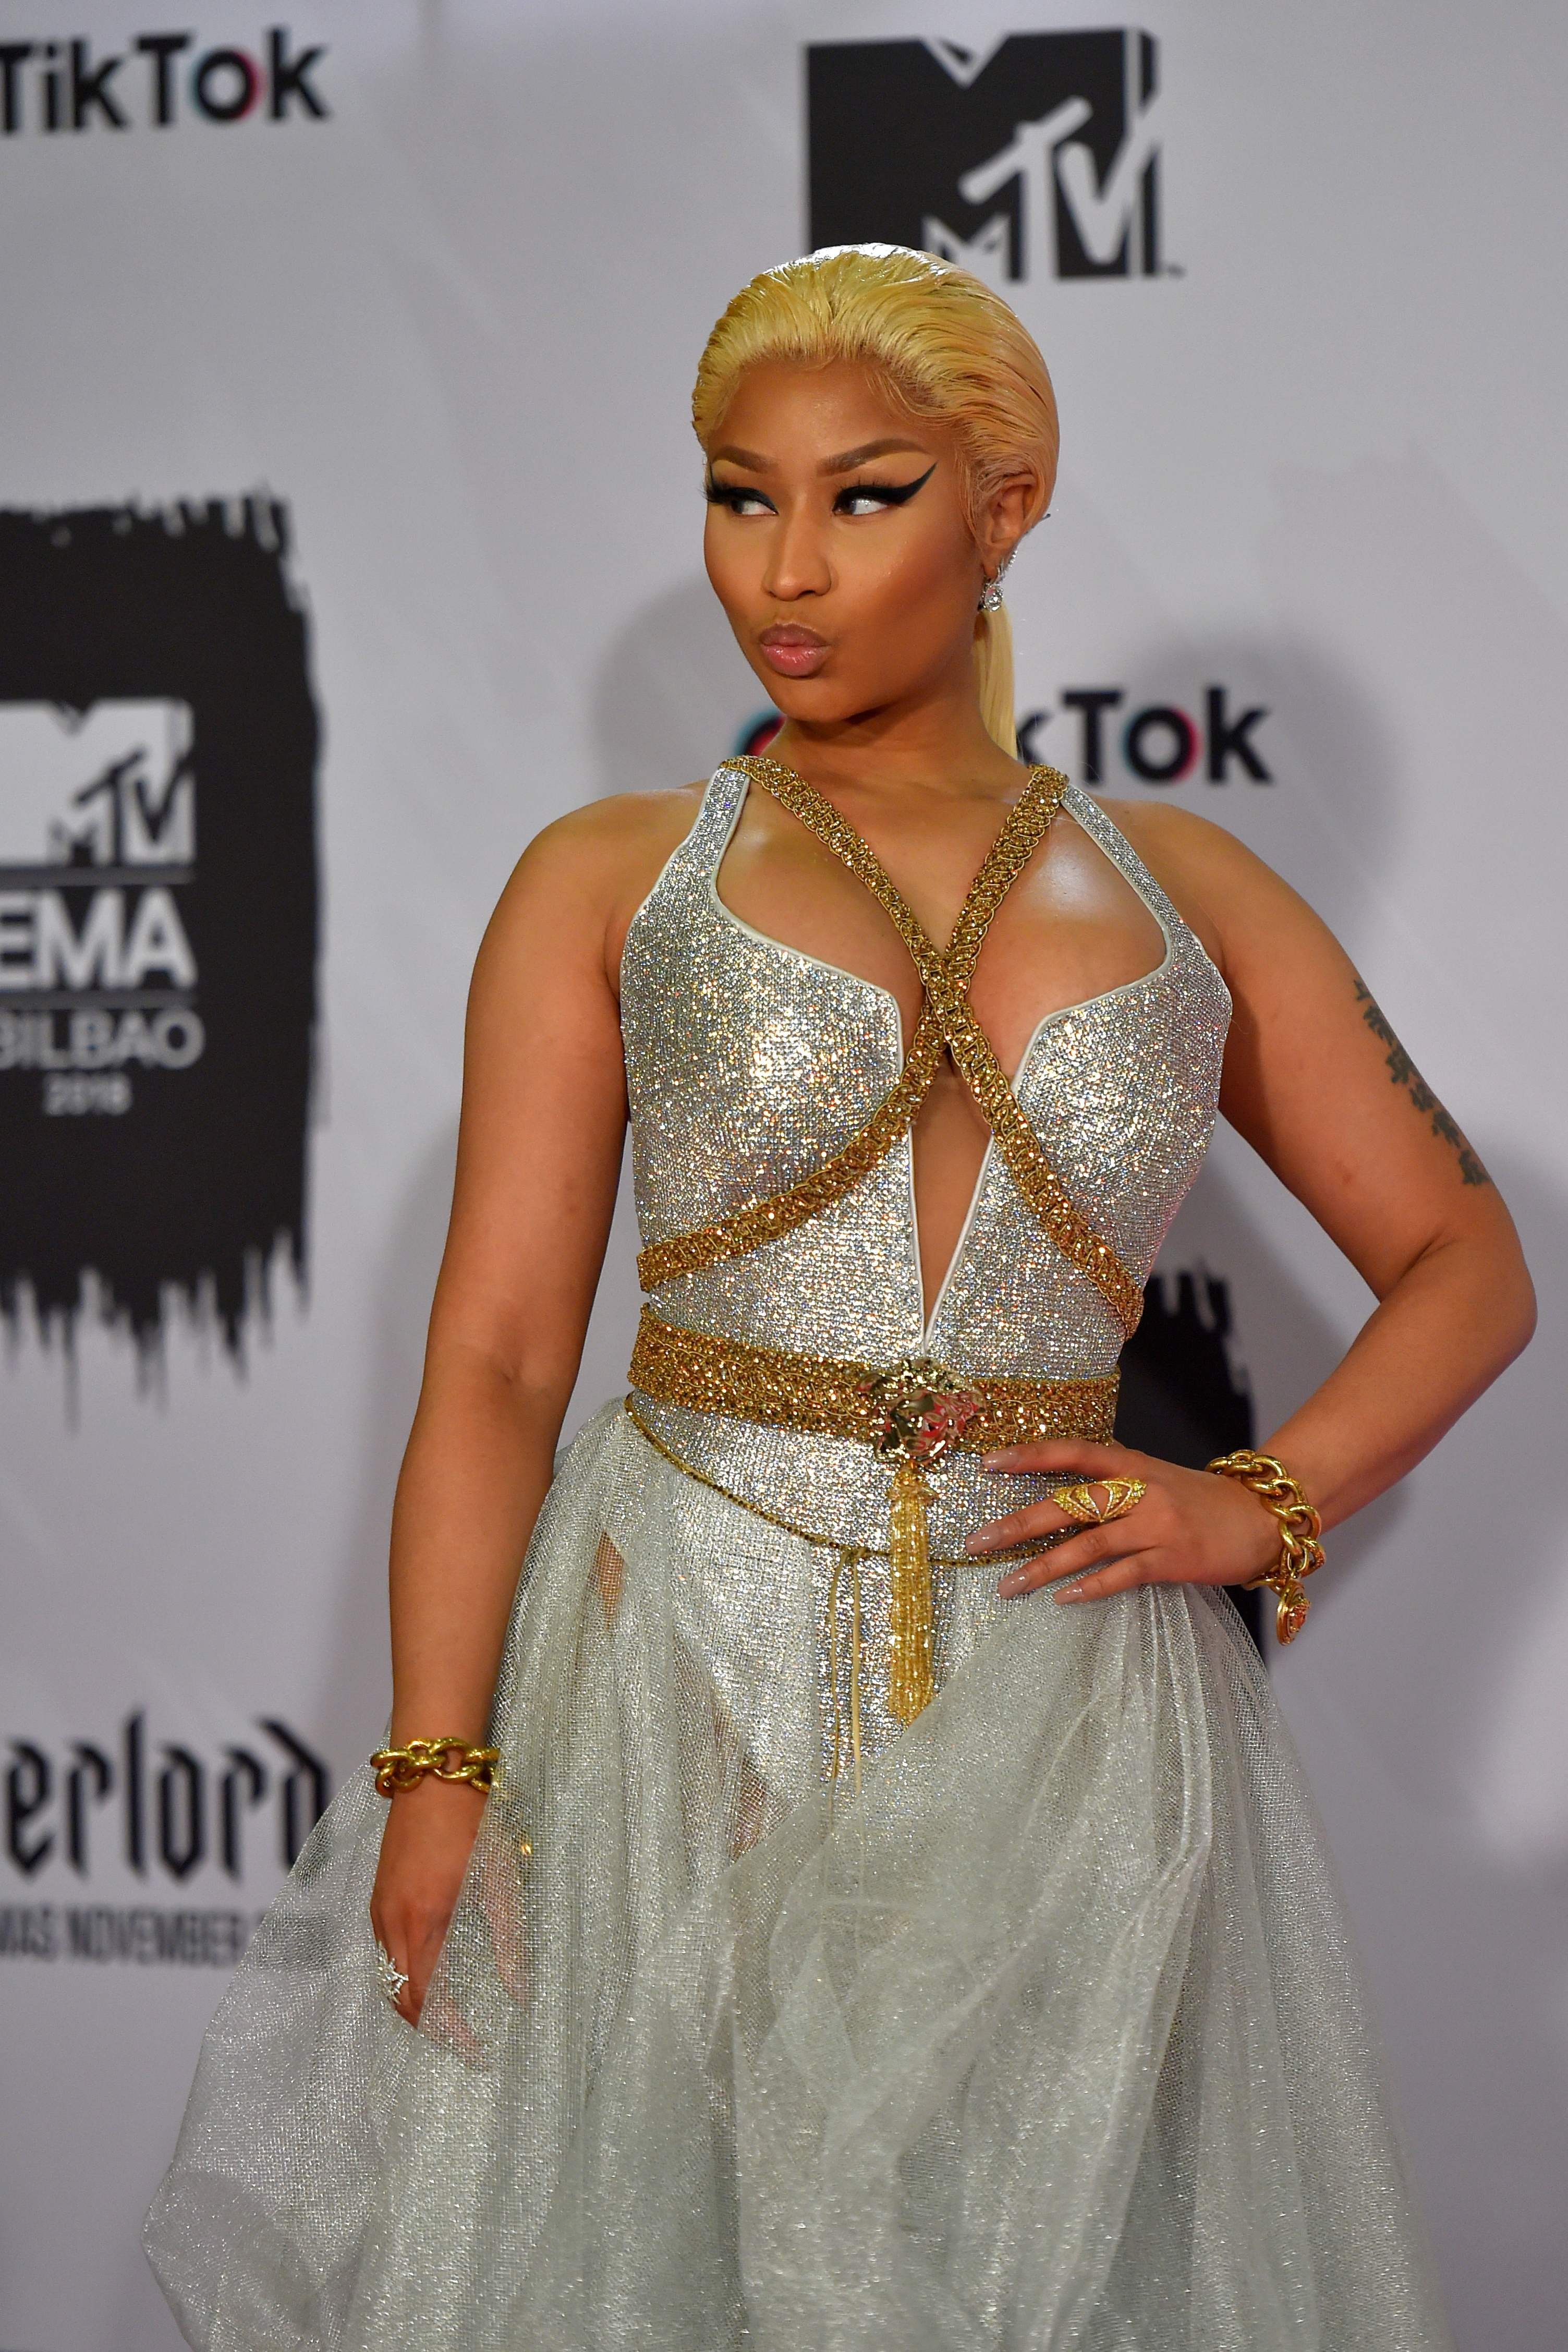 Nicki Minaj goes Instagram-official with registered sex offender Kenneth Petty